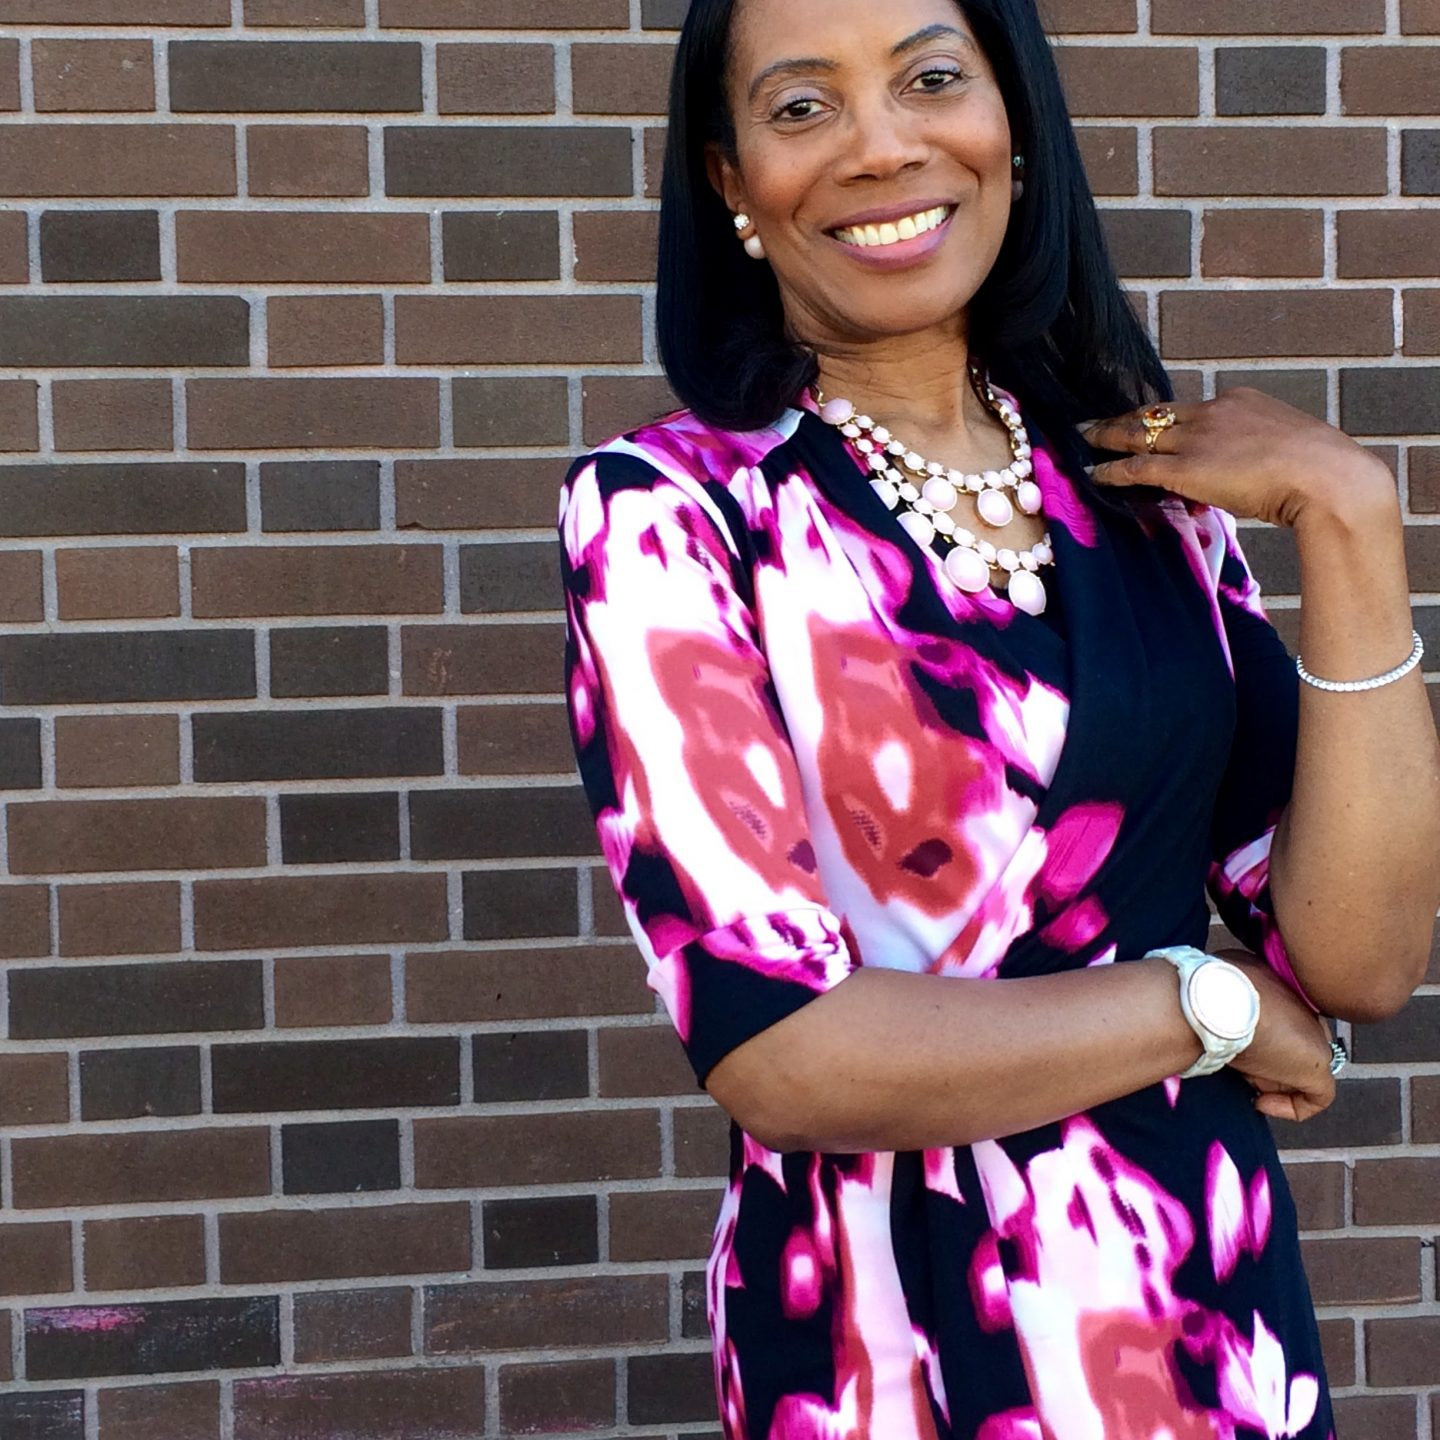 Mothers in Ministry: Balancing work, family, ministry, and expectations! [AUDIO]